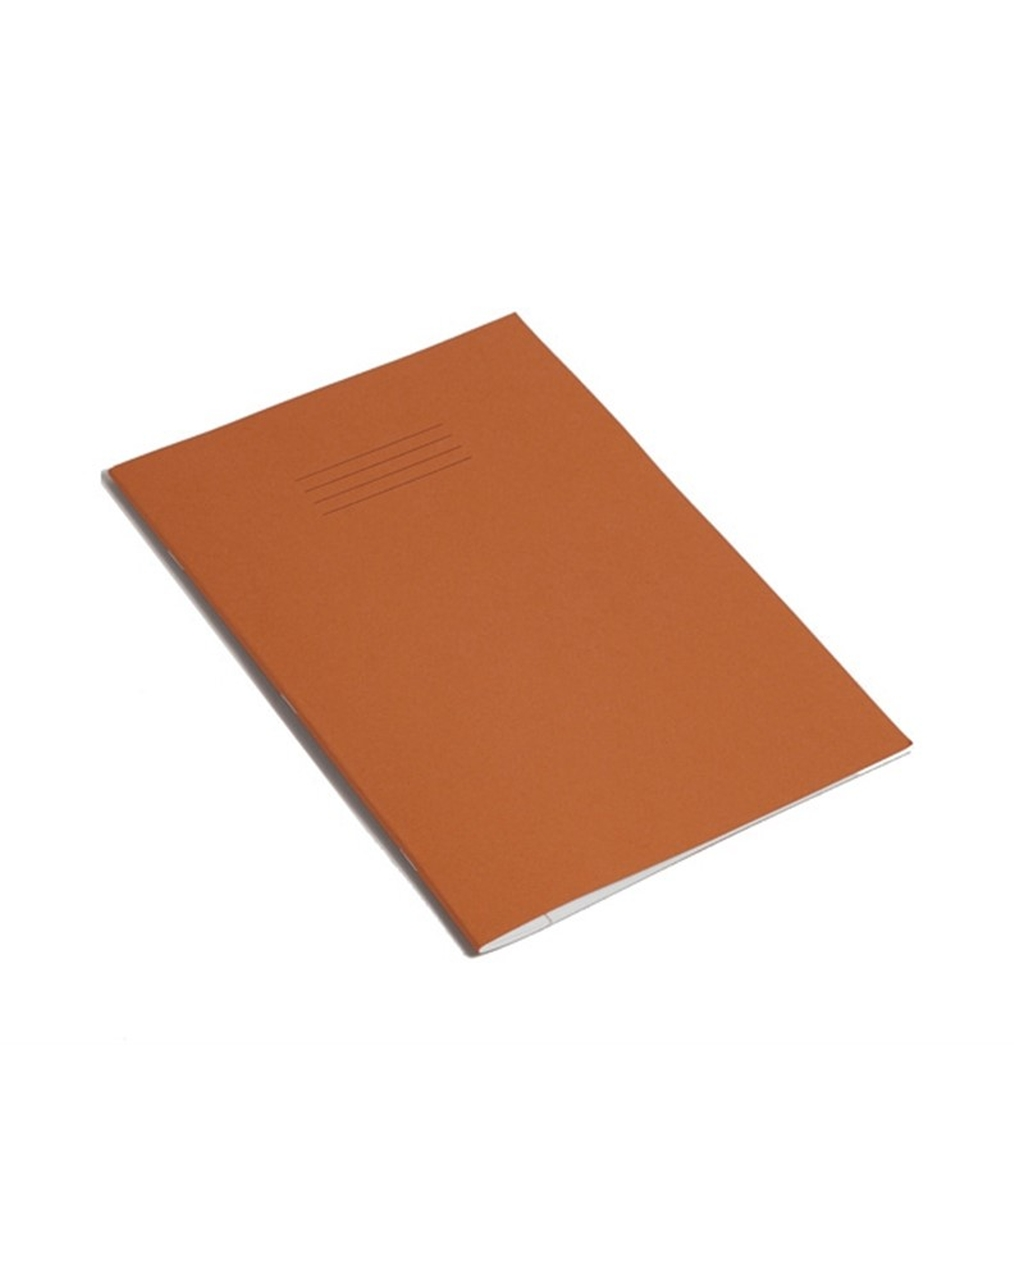 Exercise Book A4 (297 x 210mm) Orange Cover 6mm Ruled & Margin 80 Pages